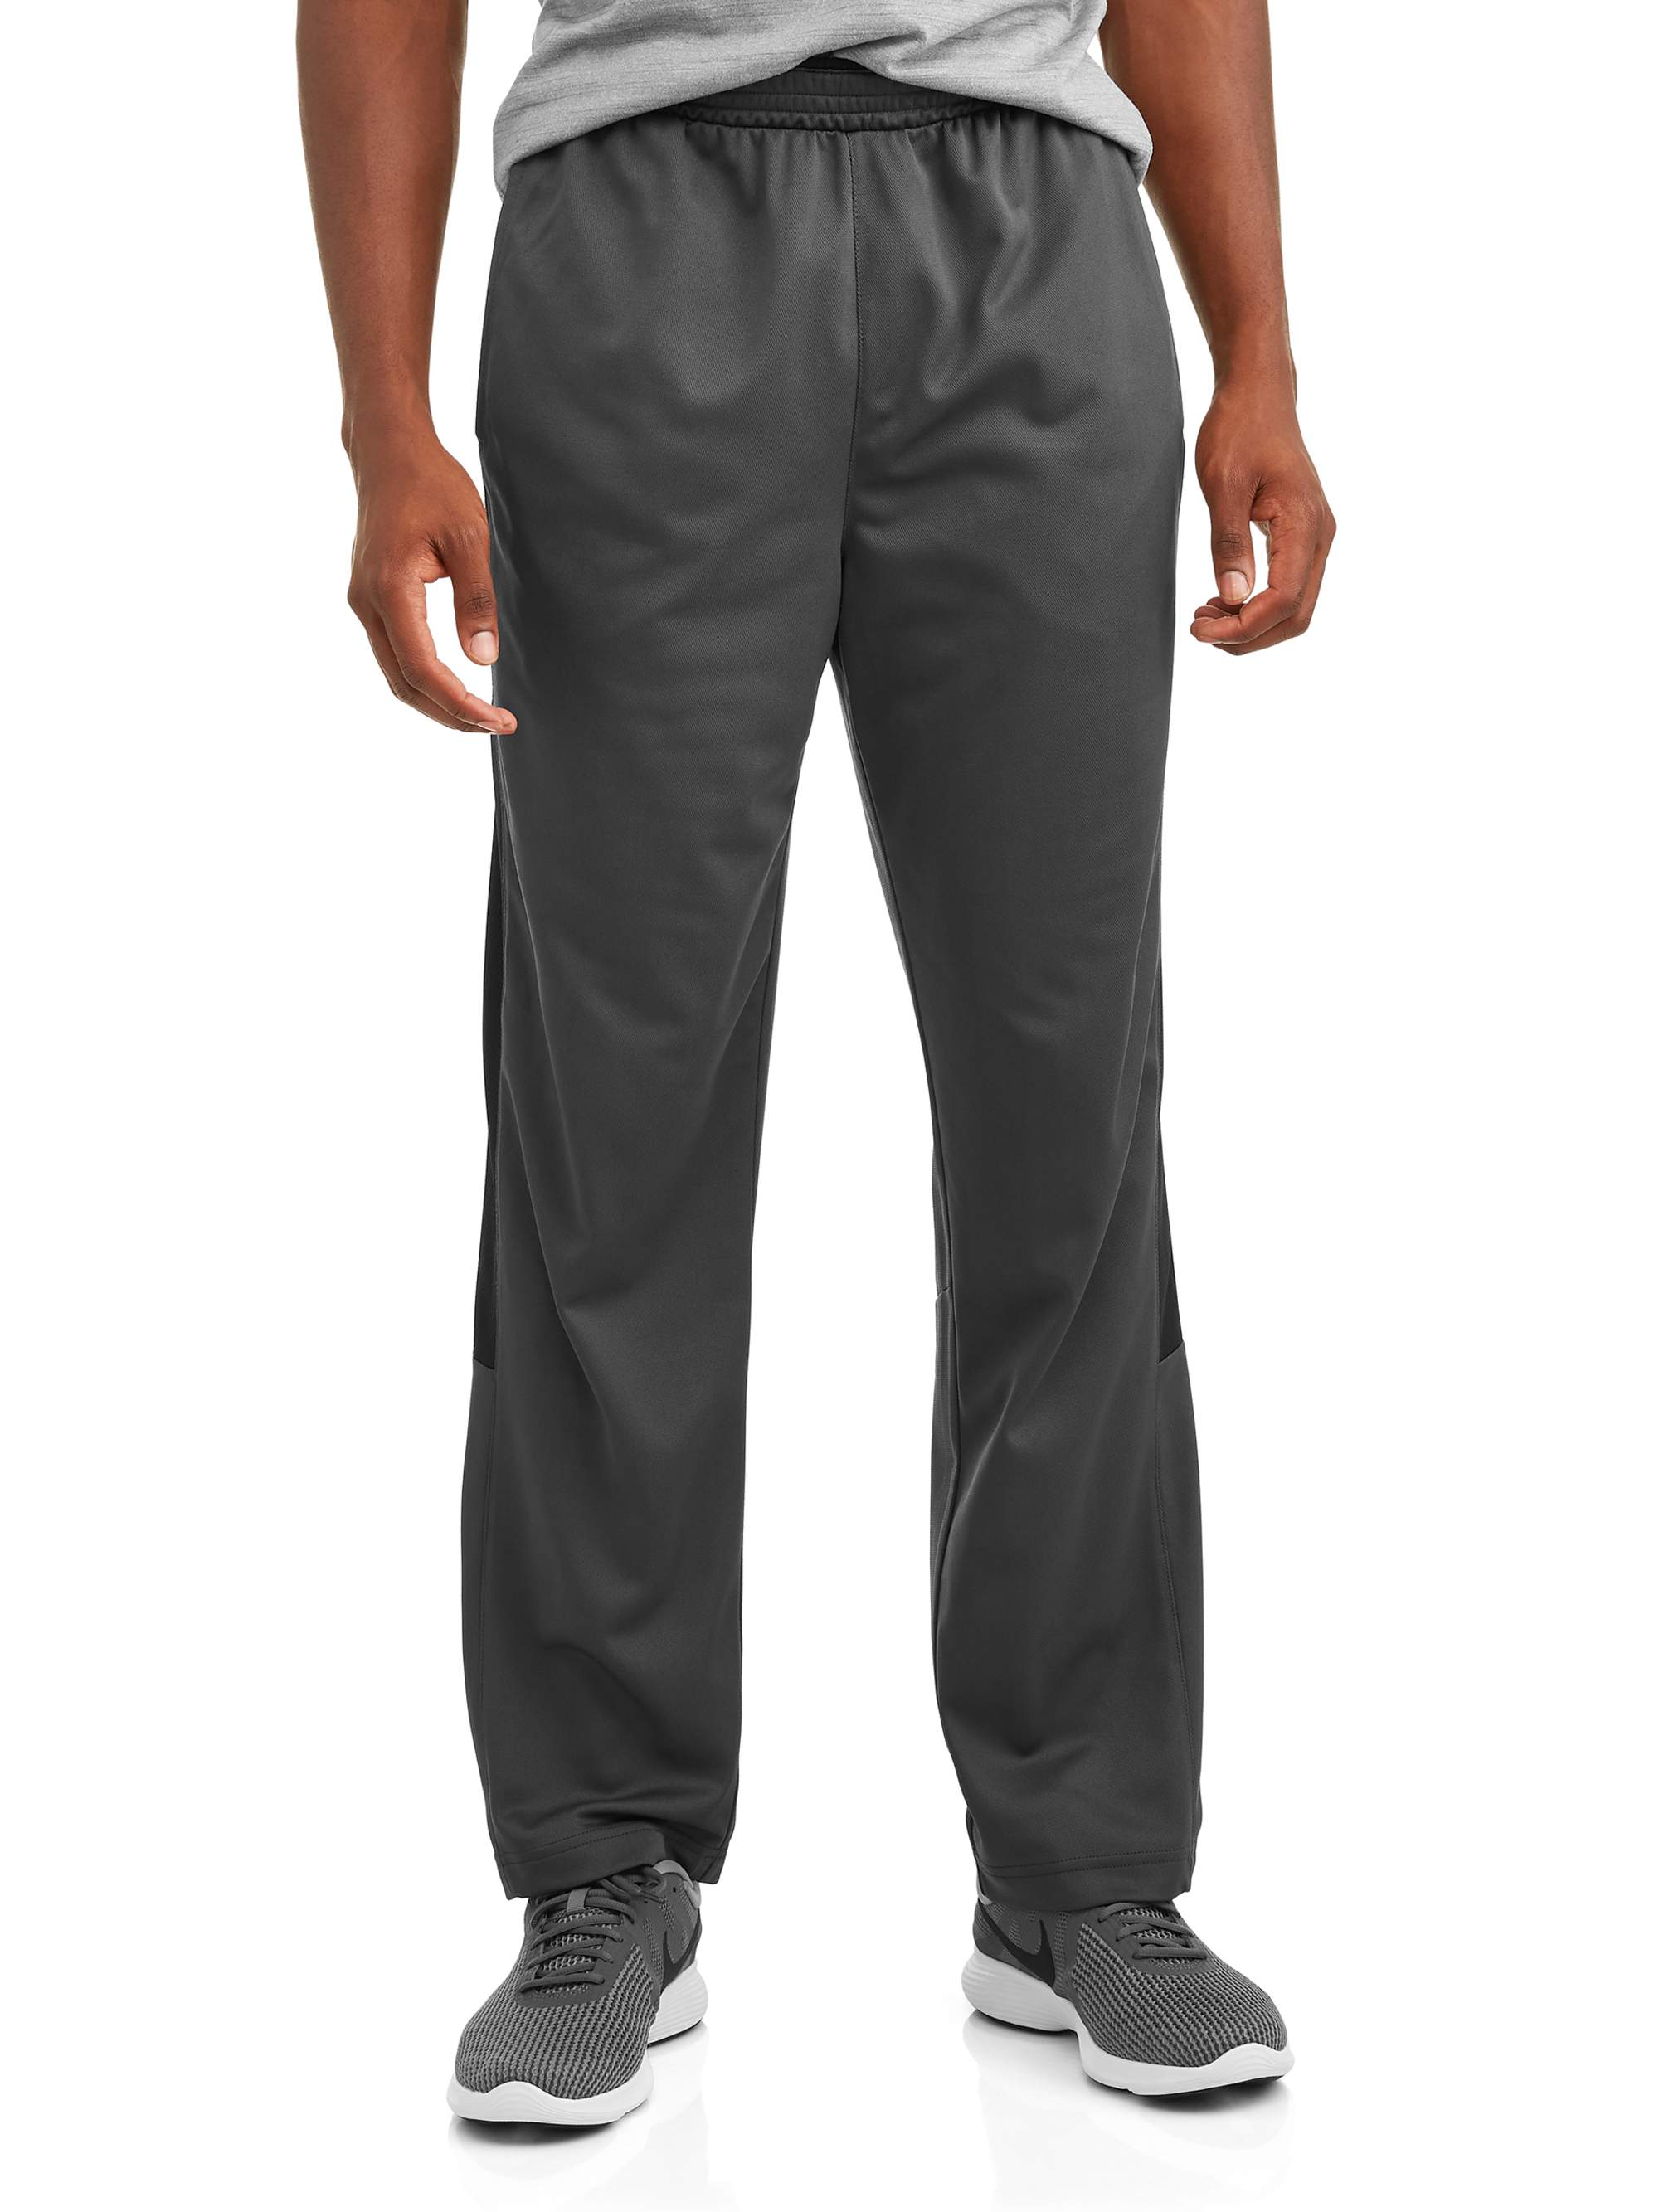 Athletic Works Men's Knit Pique Pant